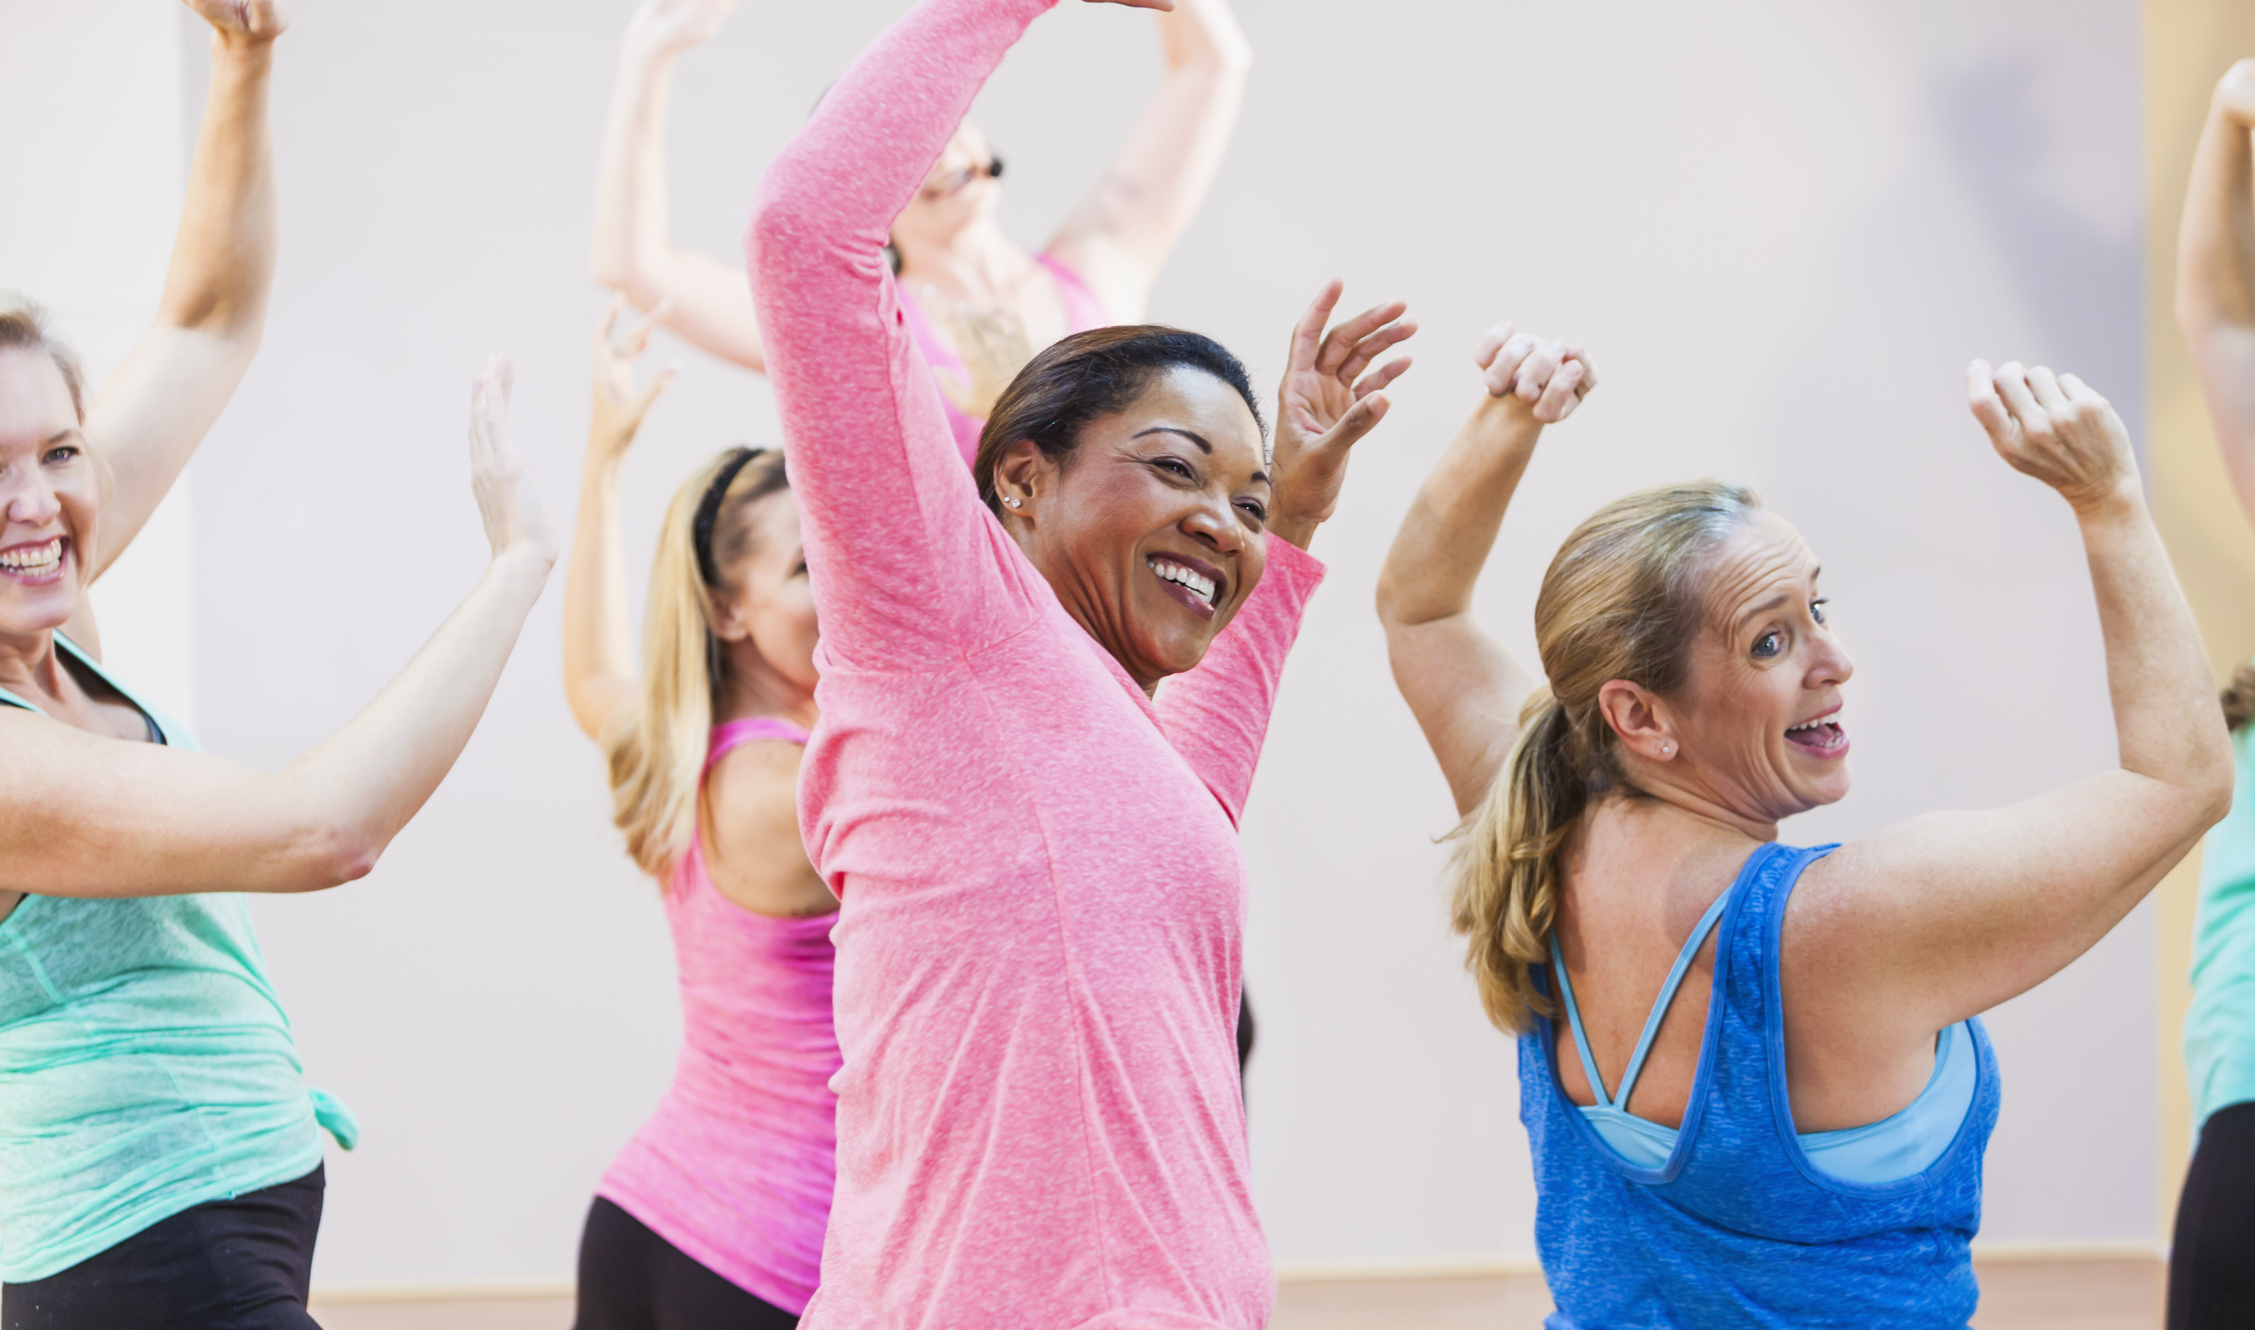 Ladies in an exercise class